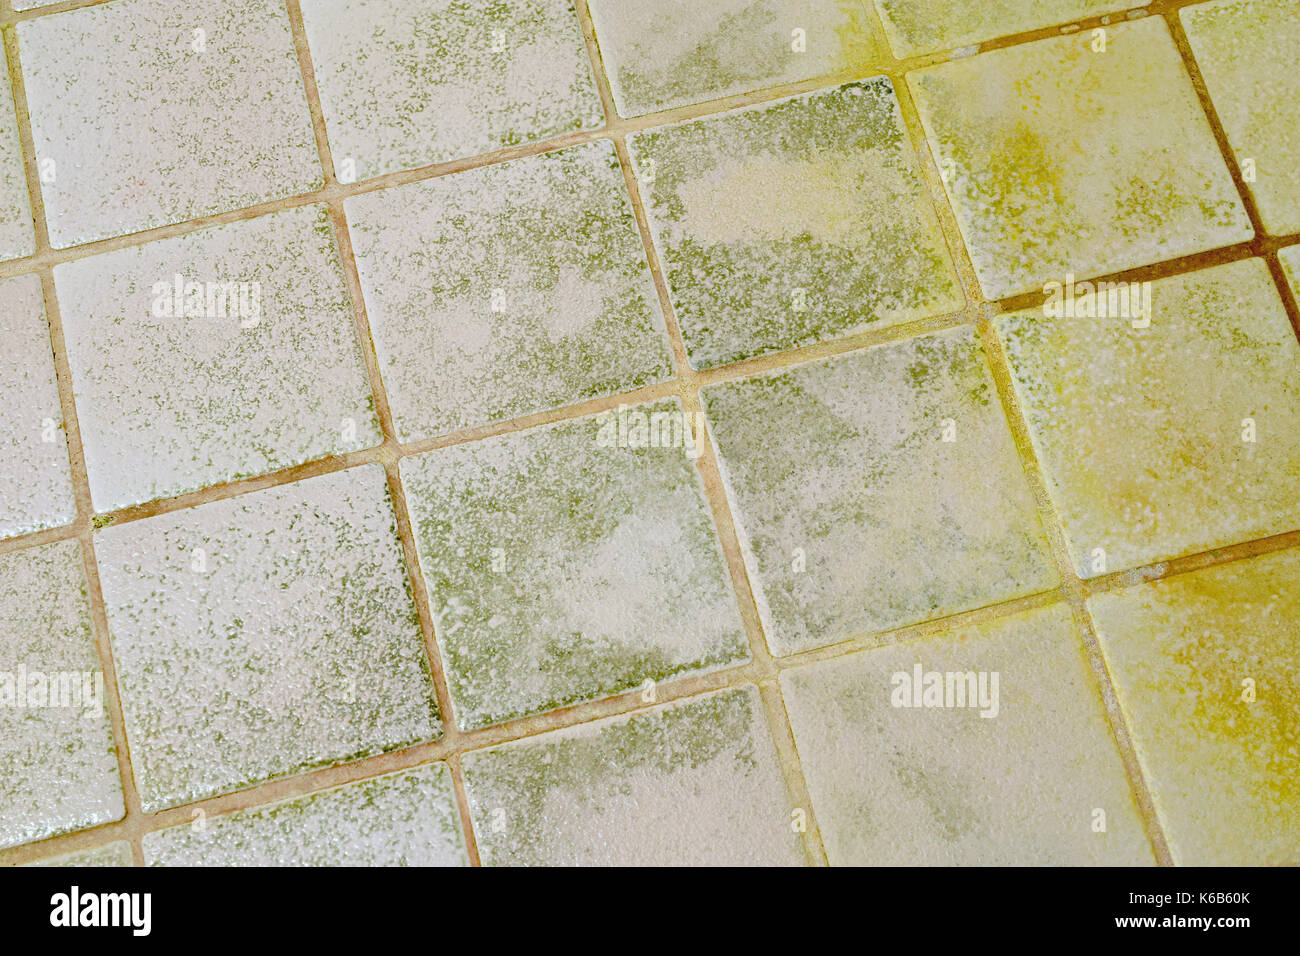 toxic mold stockfotos toxic mold bilder alamy. Black Bedroom Furniture Sets. Home Design Ideas